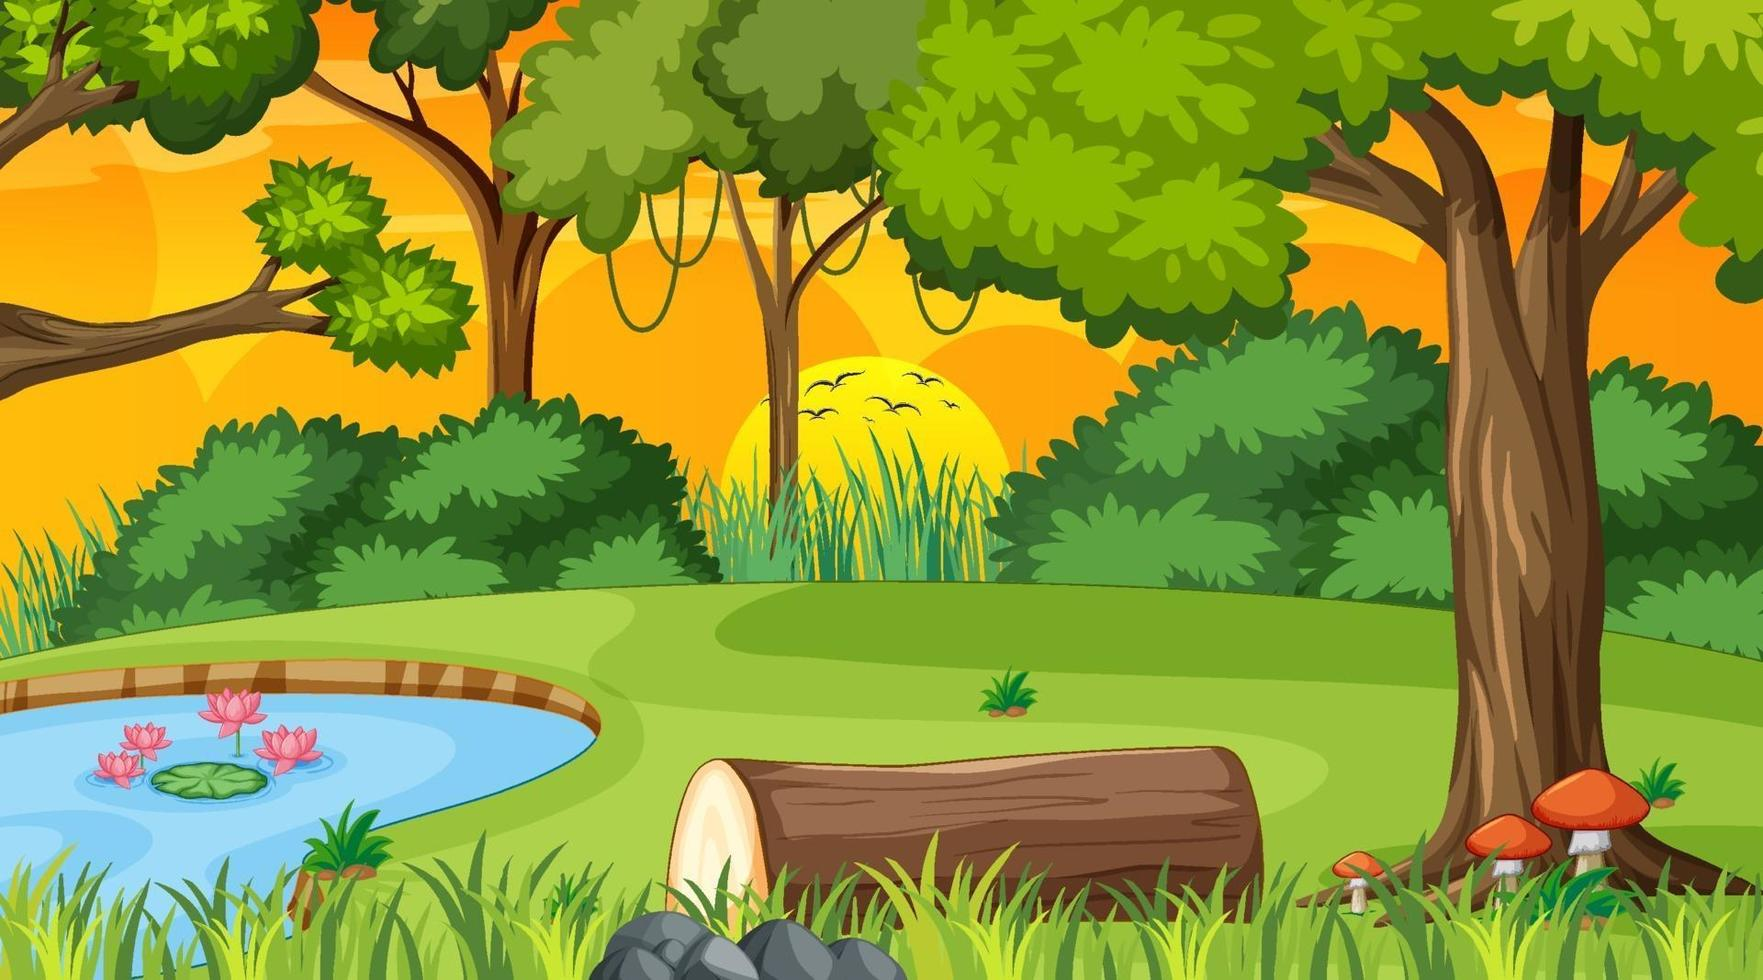 Forest nature scene with pond and many trees at sunset time vector